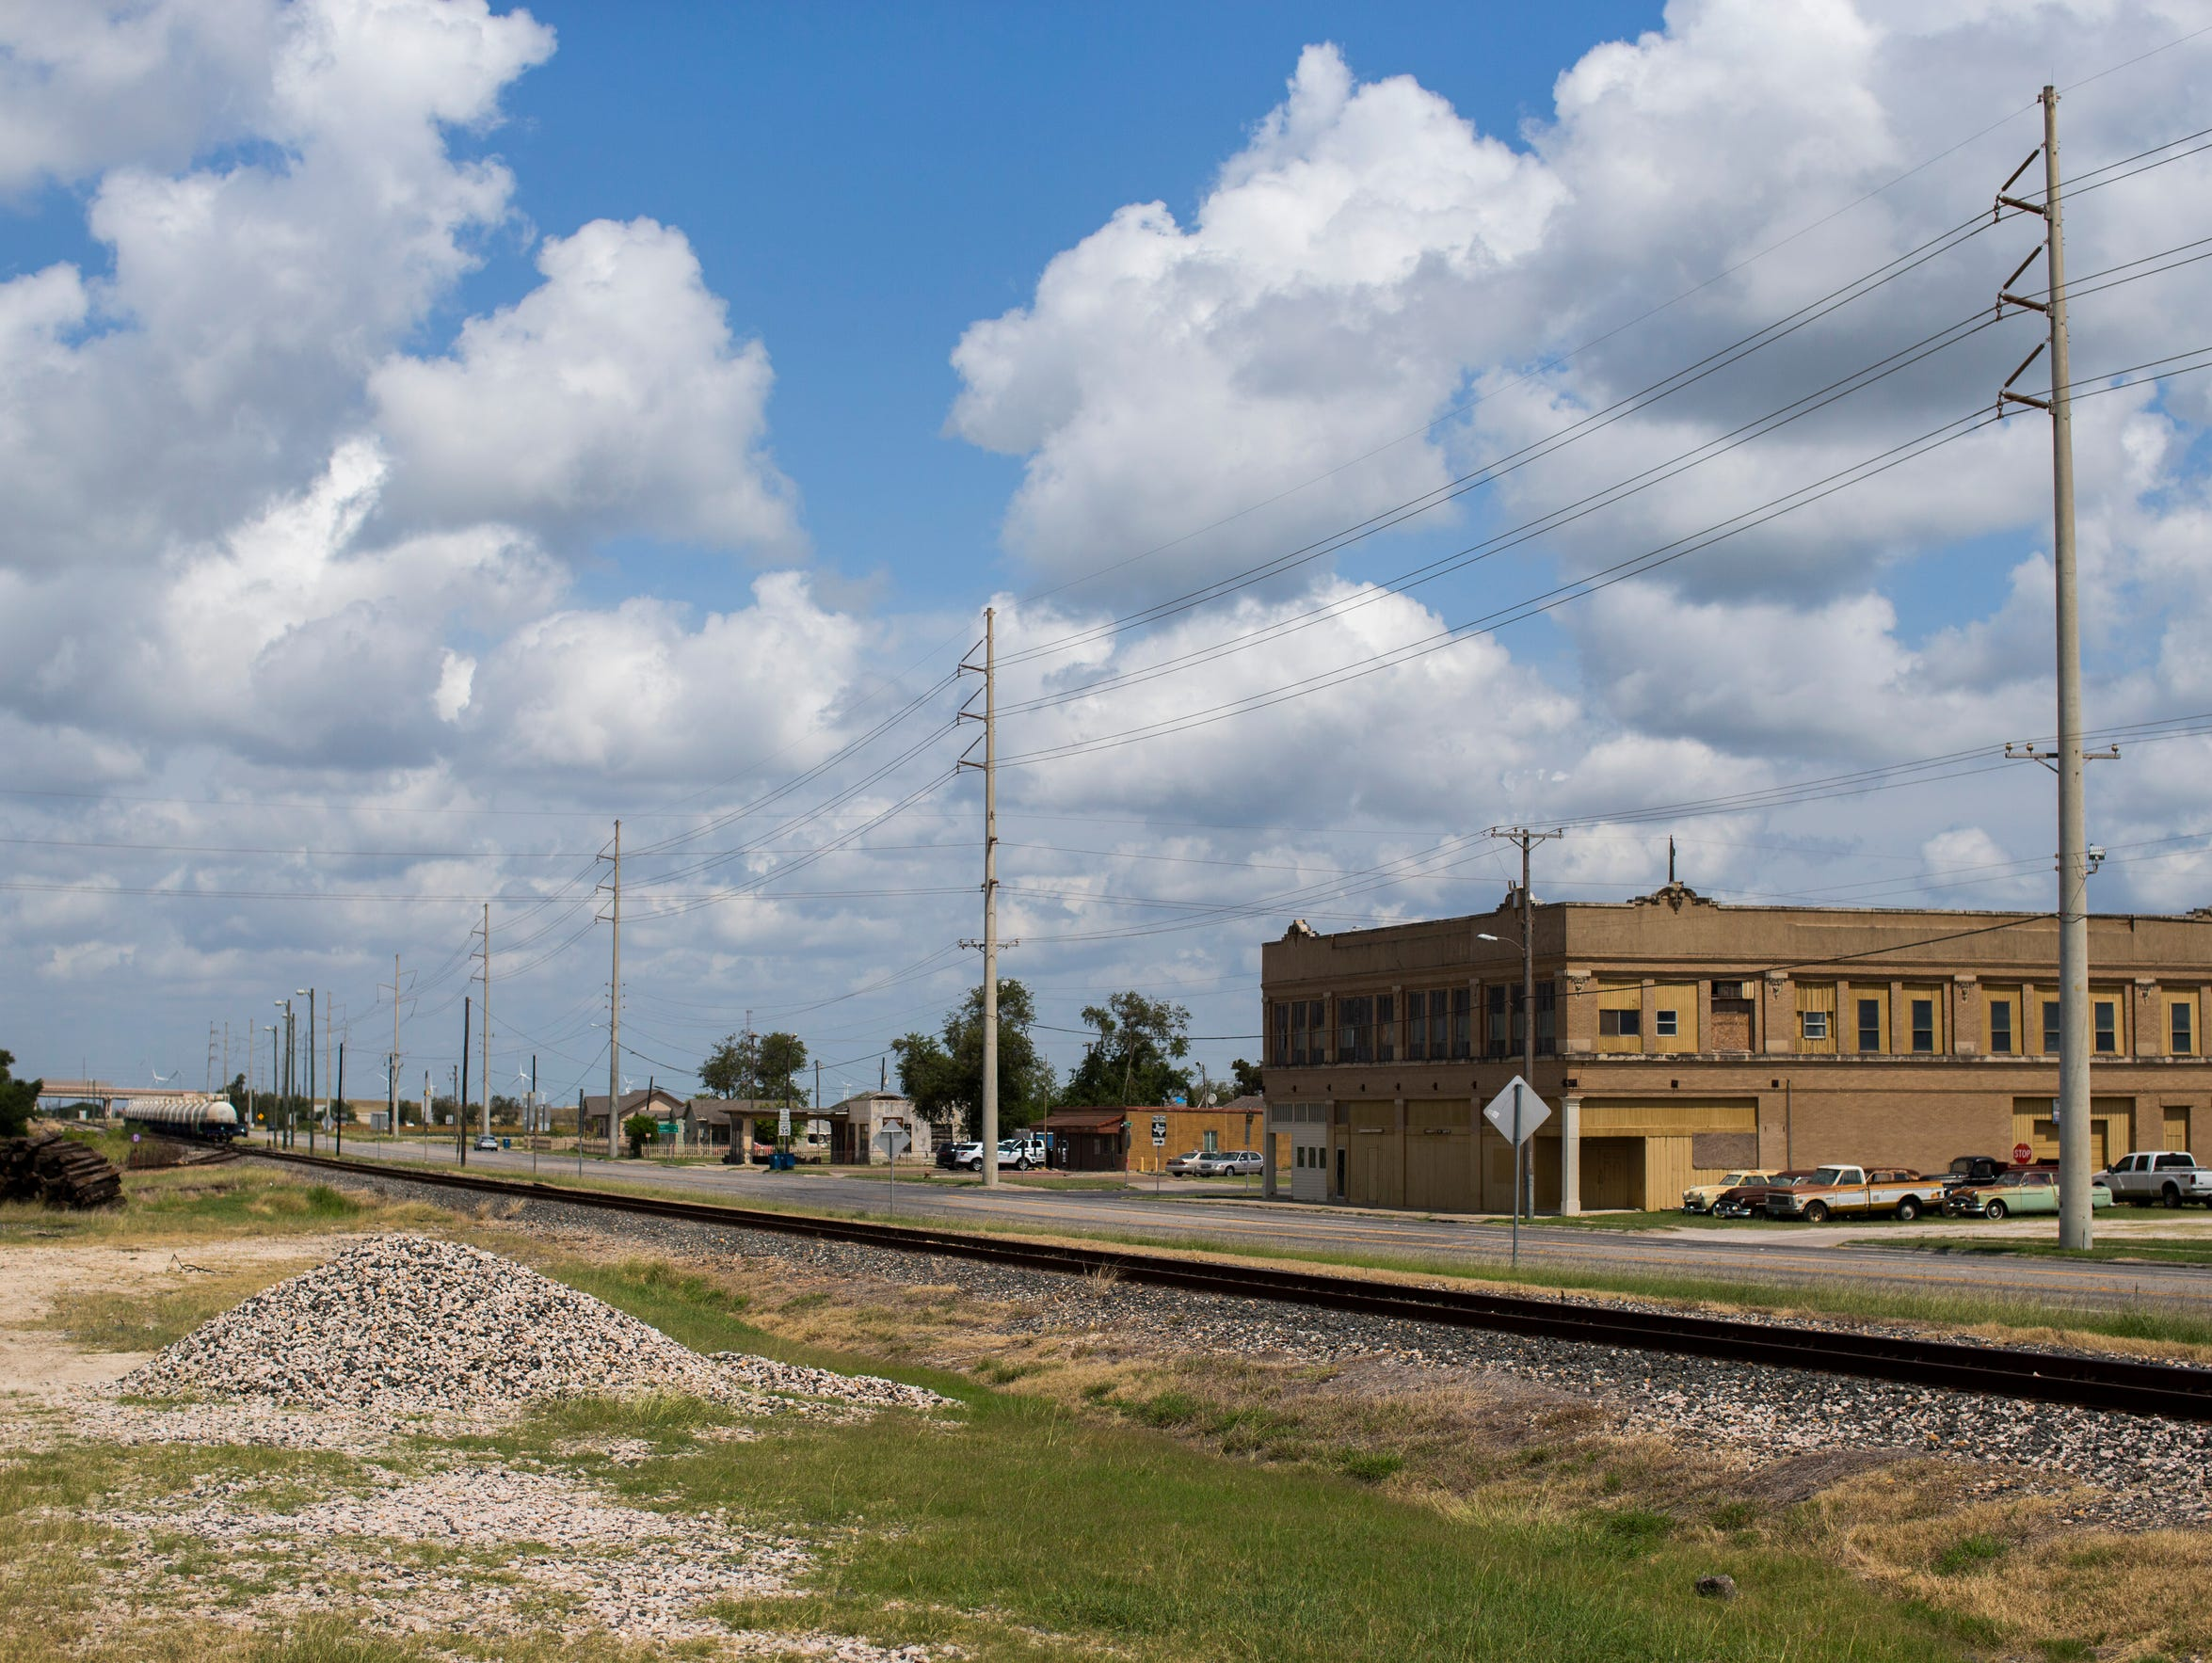 Gregory, Texas on Monday, June 4, 2018.